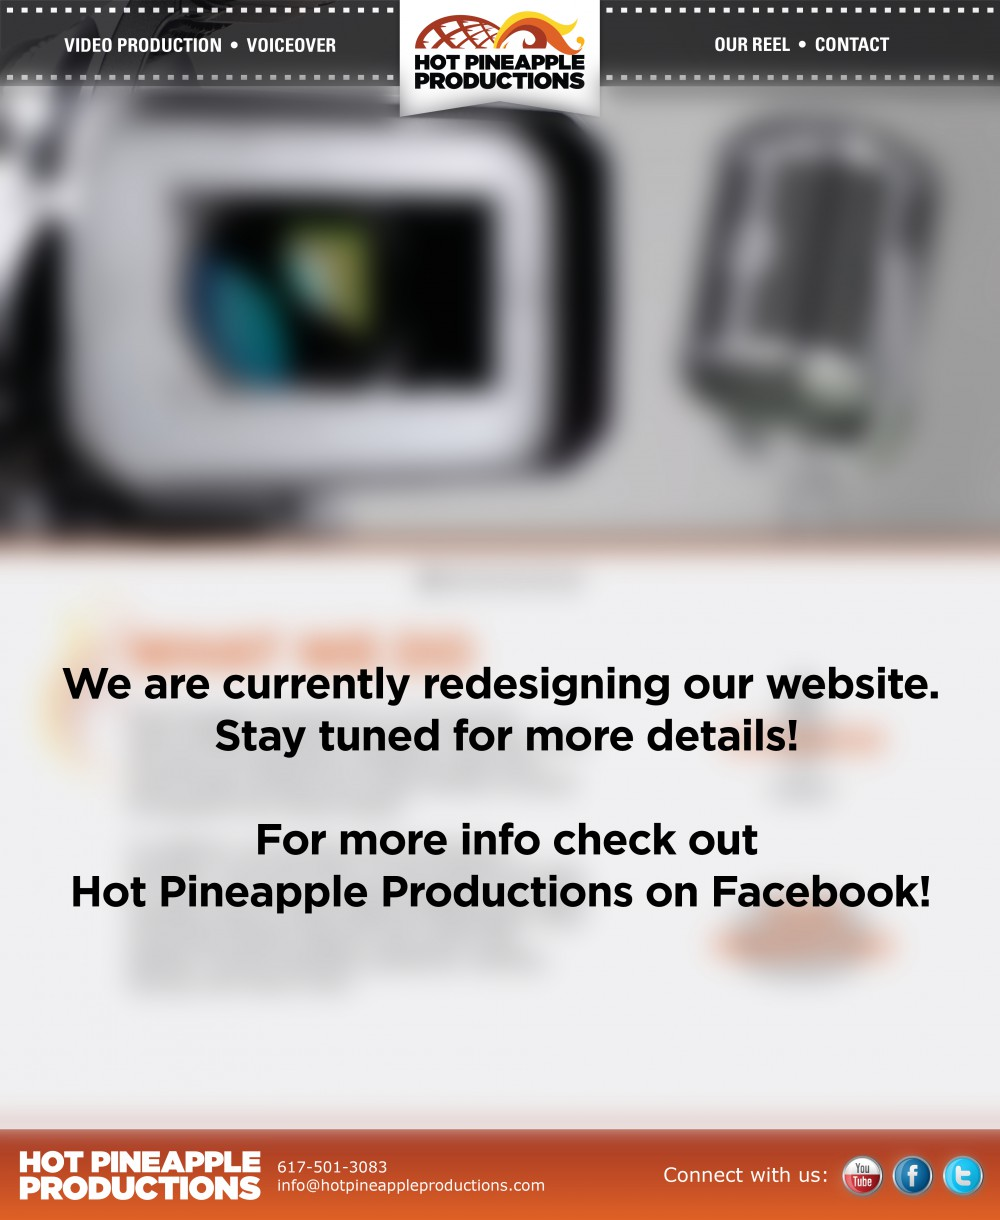 HOT PINEAPPLE PRODUCTIONS